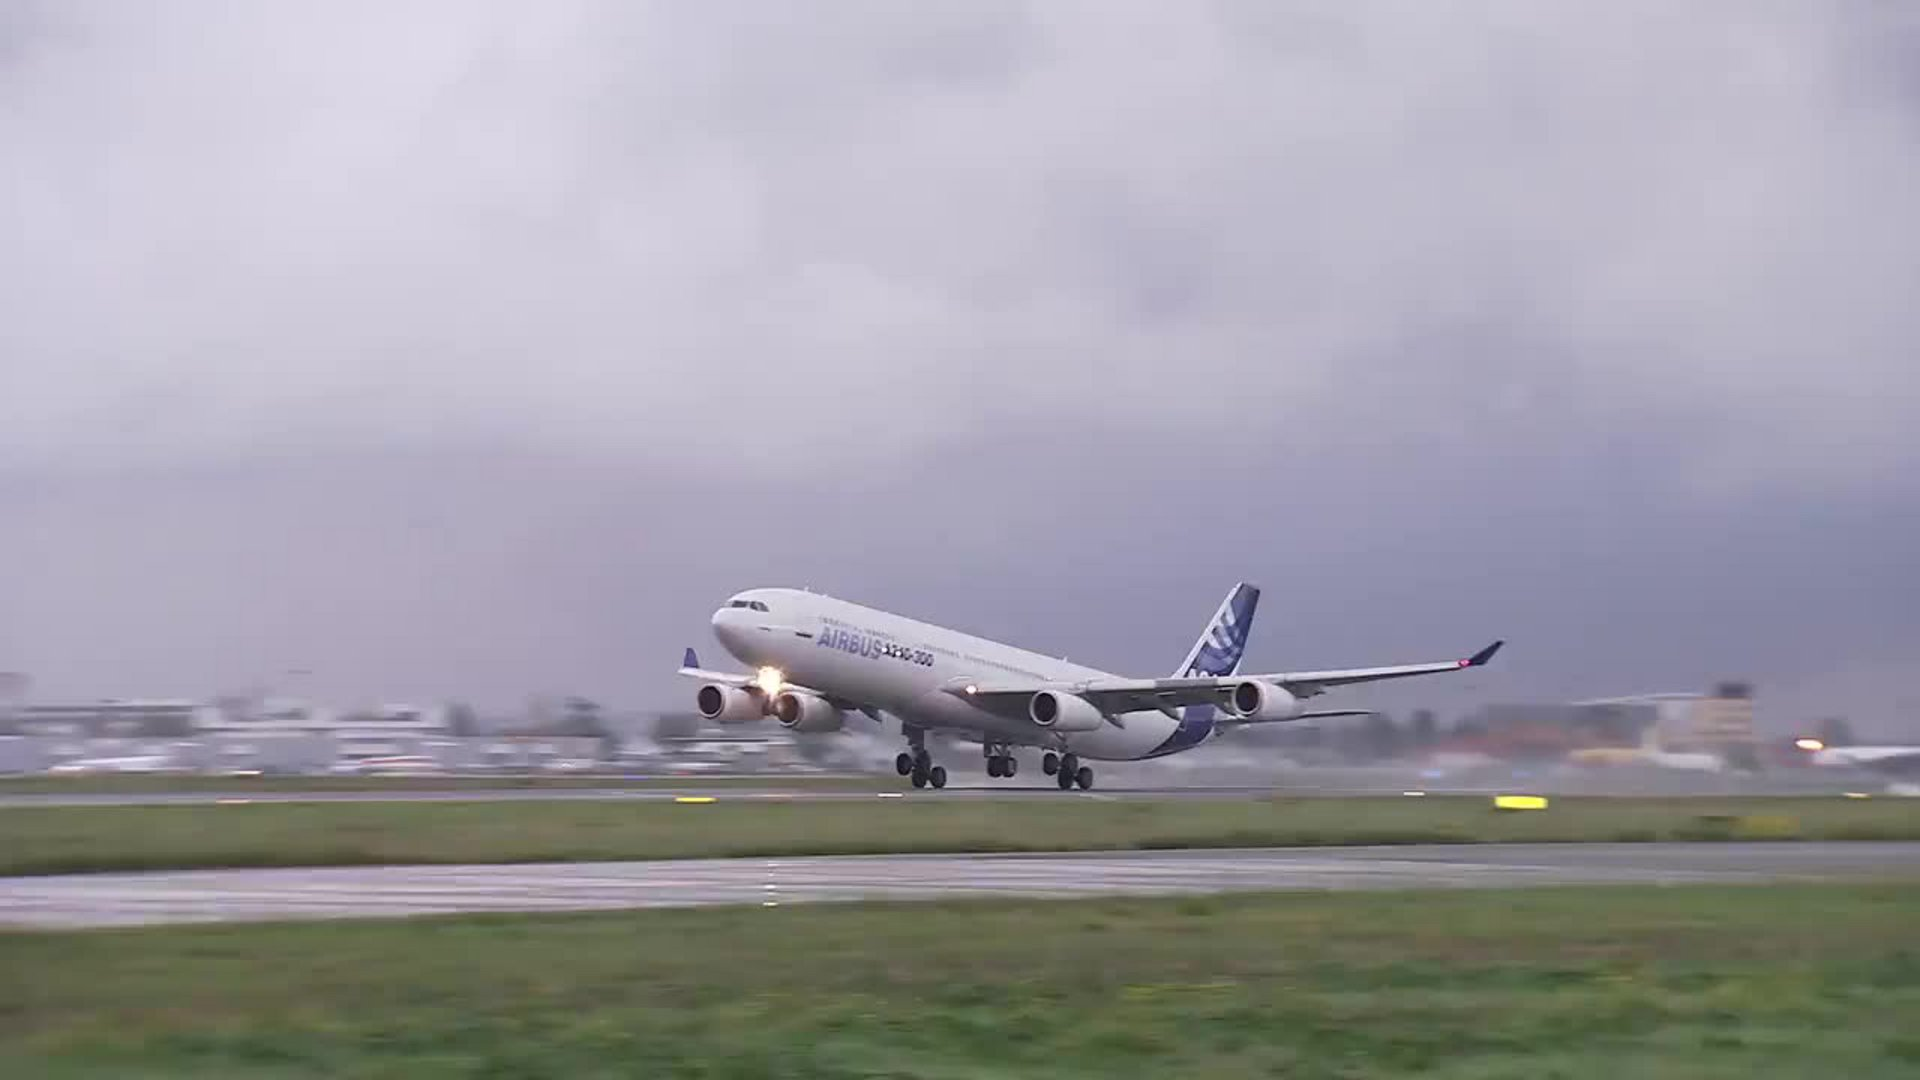 Airbus Corporate Foundation coordinates Humanitarian Relief Aid to the Philippines